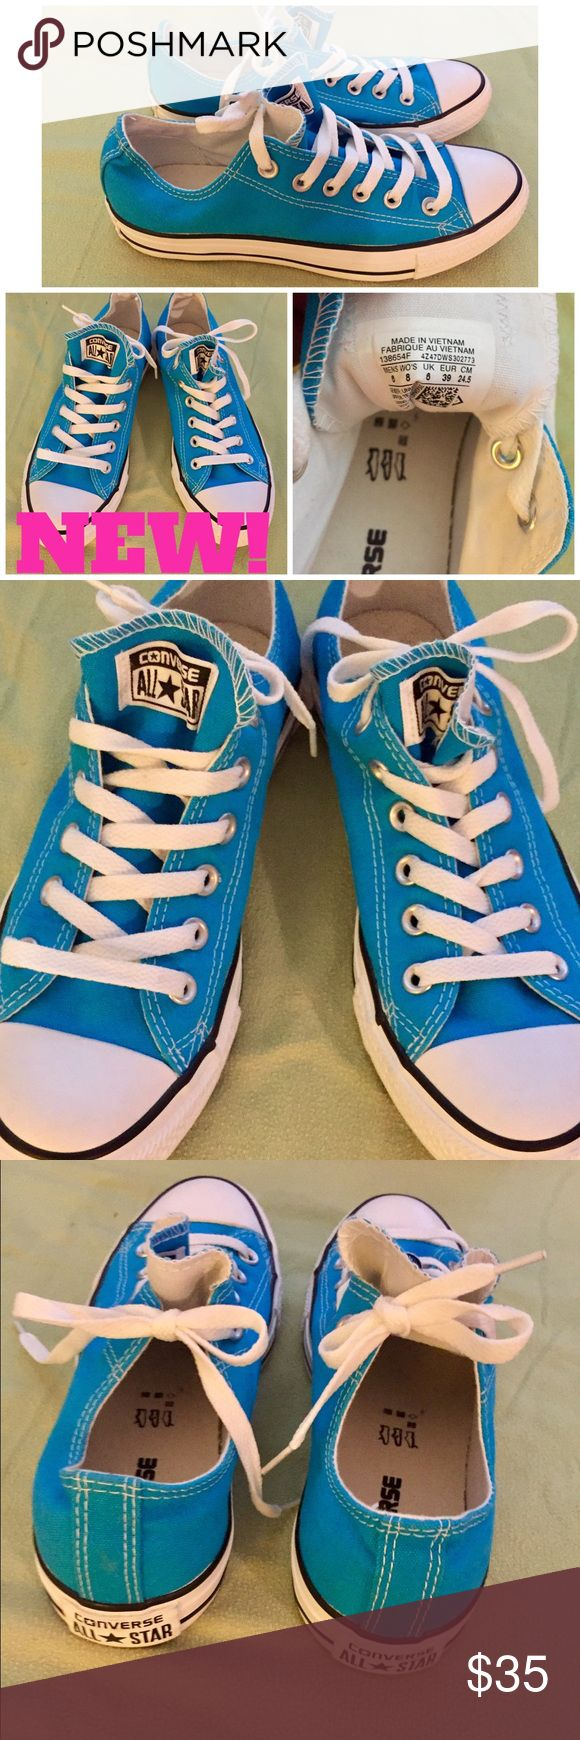 👟 NEW! CONVERSE TURQUOISE LOW TOP SNEAKERS👟 I bought these really bright turquoise colored Converse All Stars to wear this summer & unfortunately since I lost 65+lbs-I had no idea my feet would shrink as well! These have never even hit the pavement, but did try them on at the store & at my house. See pic #4 of the tag & inside as well & you can tell these are new! I no longer have the box & that's why I'm not advertising them as NWT.⭐️I AM SORRY BUT I DO NOT TRADE OR APPRECIATE LOWBALL…